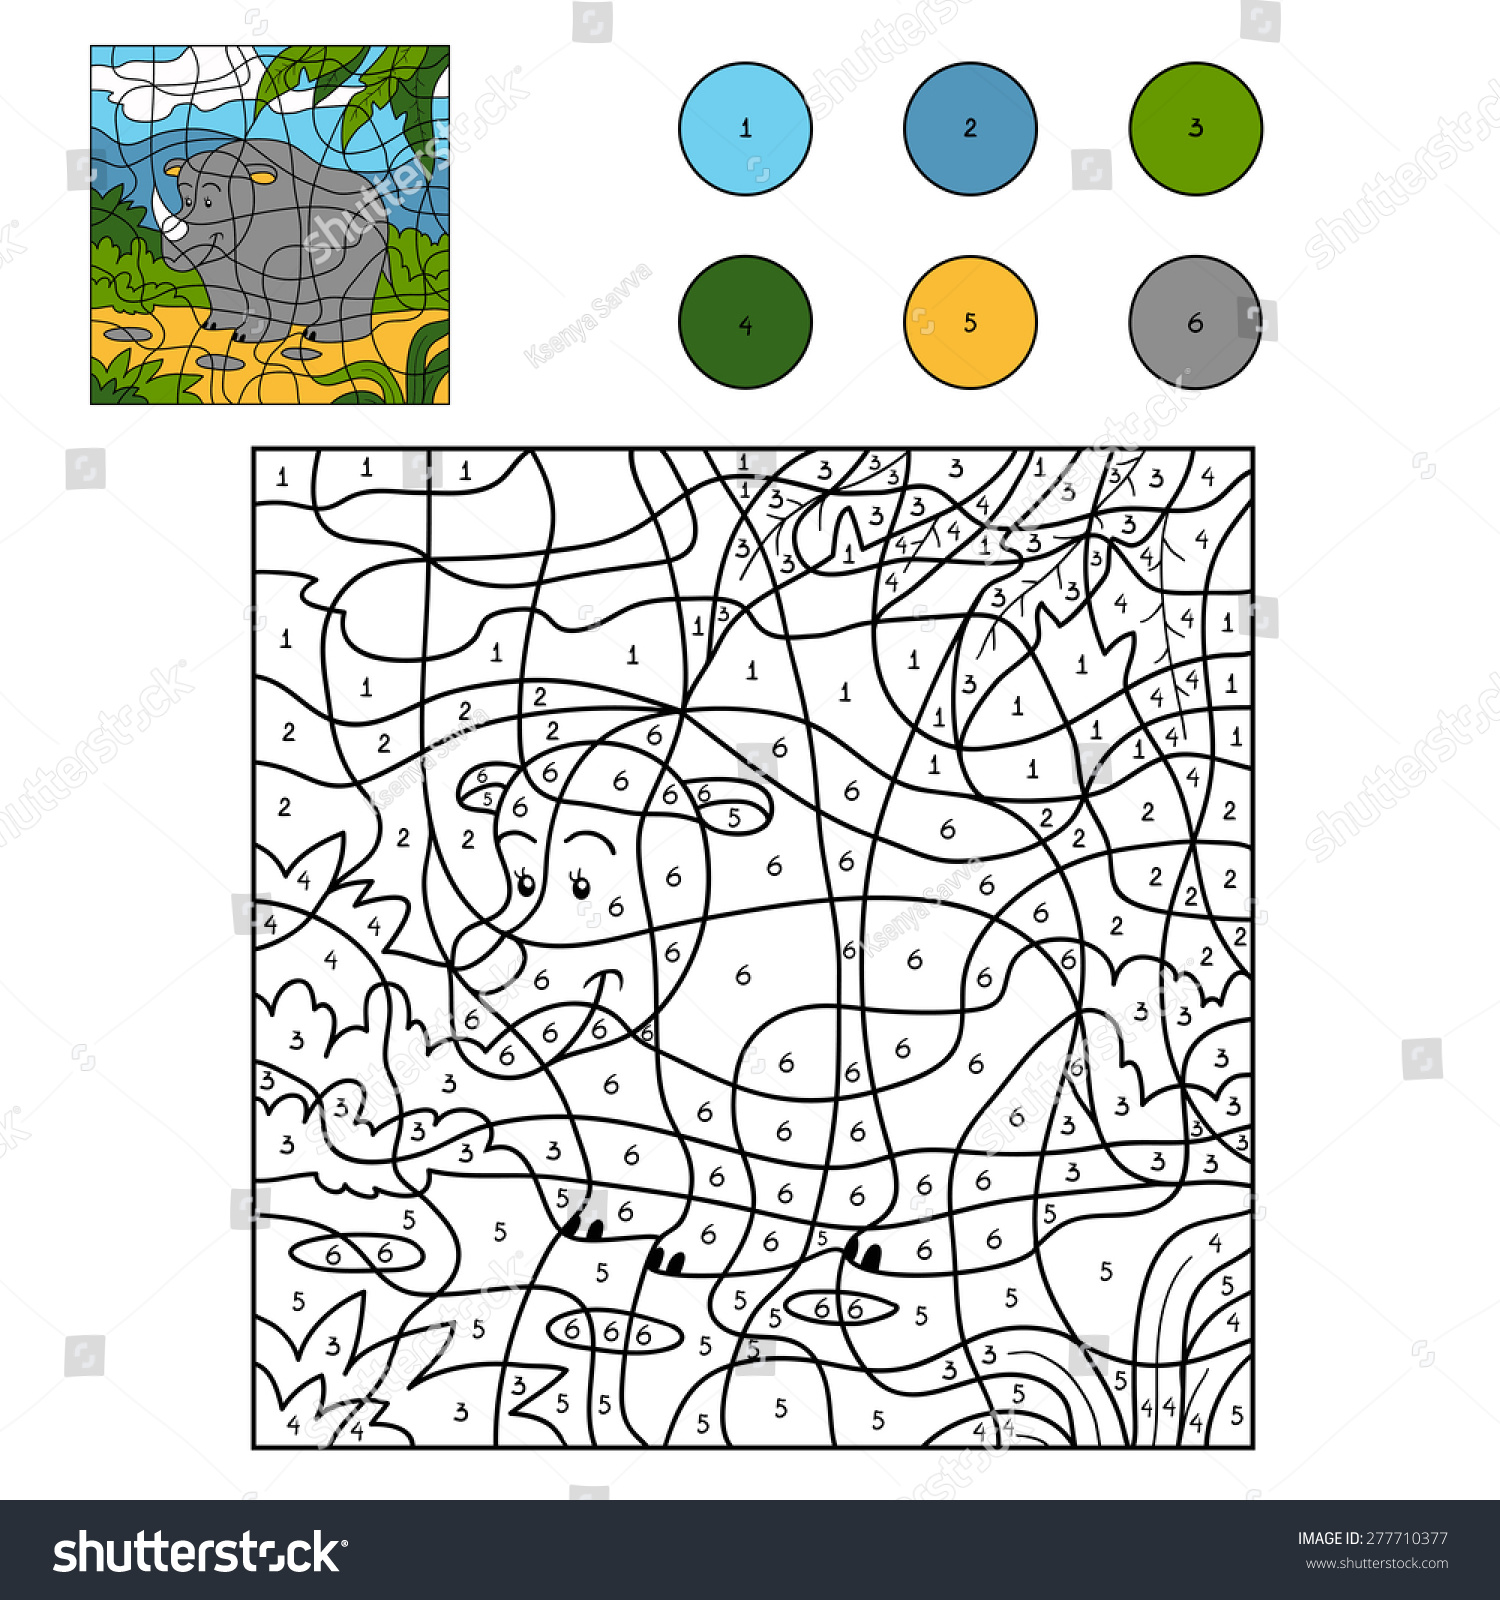 The zoology coloring book - Color By Number Rhino